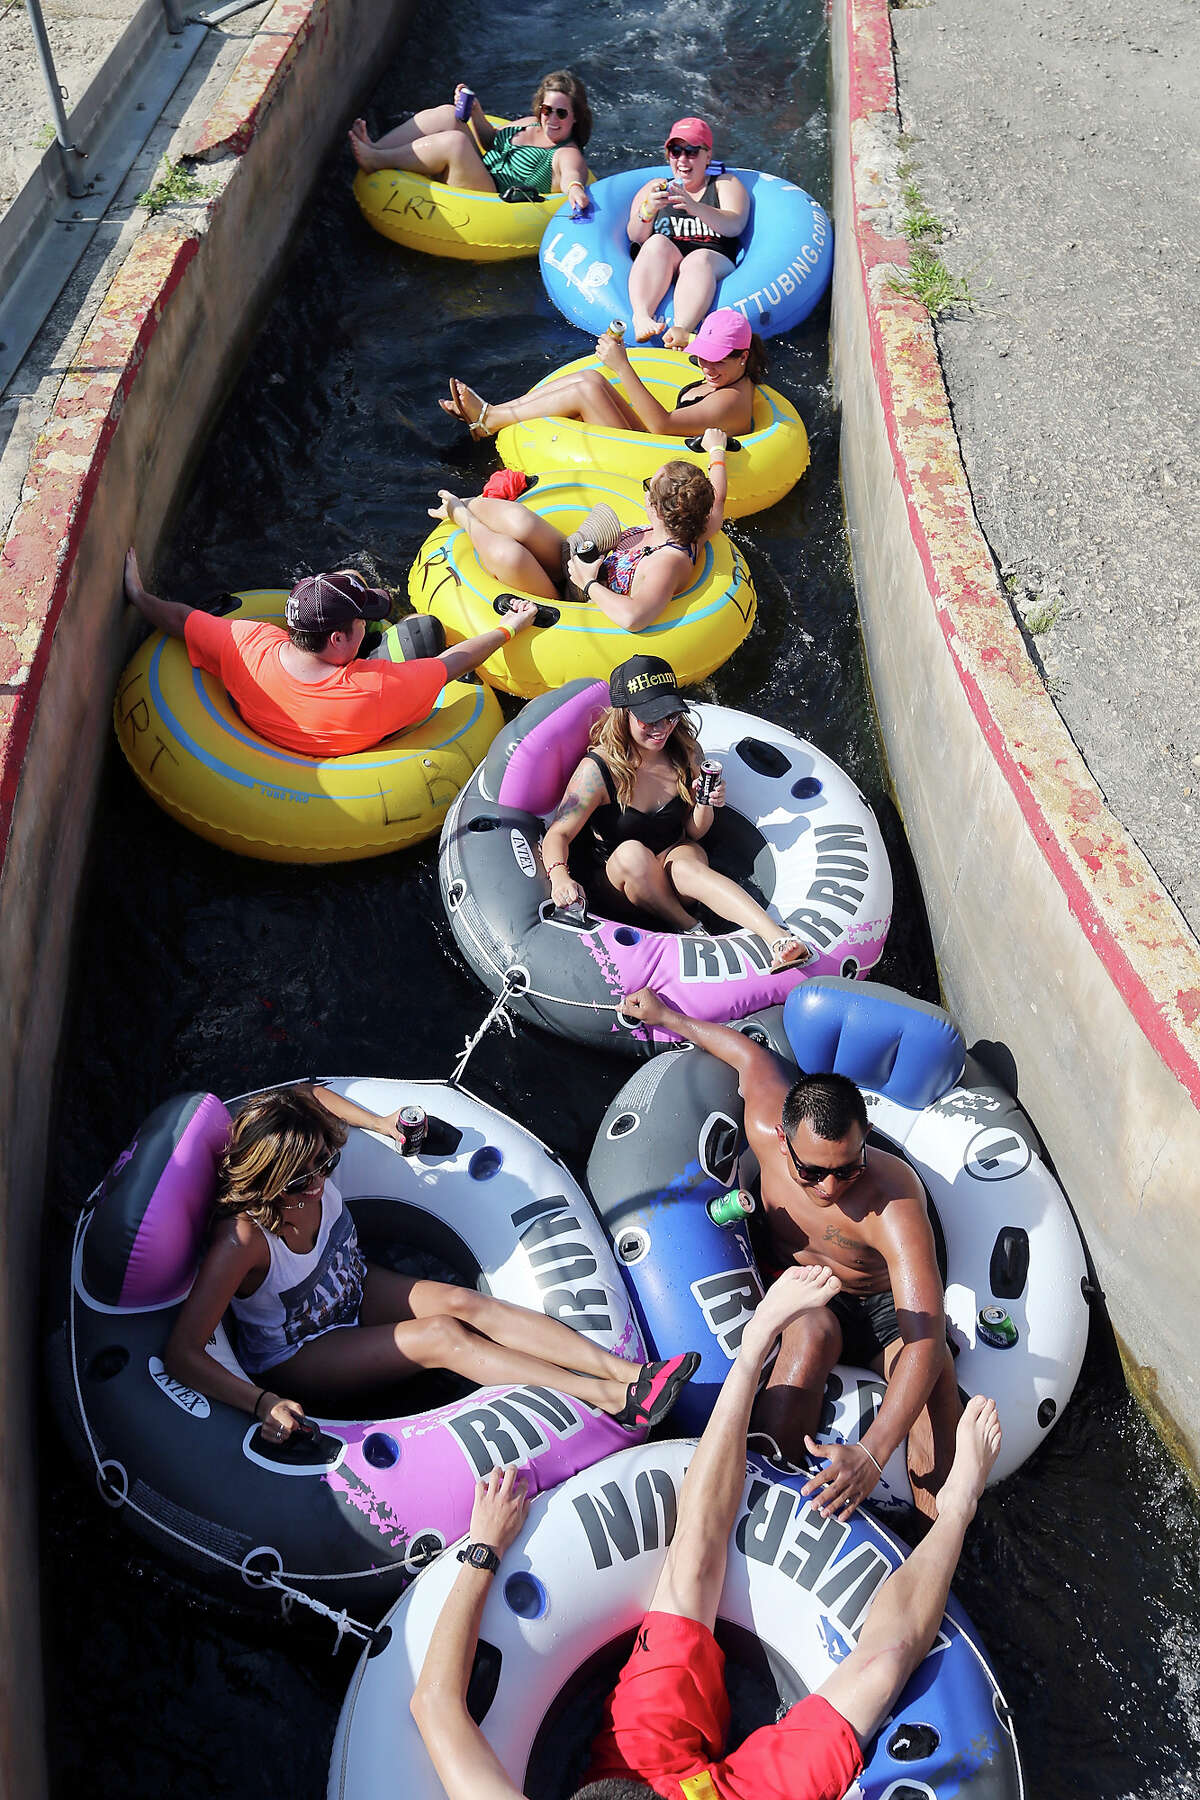 Trying to stay cool tubers enjoy the tube chute in Prince Solms Park on the Comal River Sunday July 26, 2015 in New Braunfels, Tx.